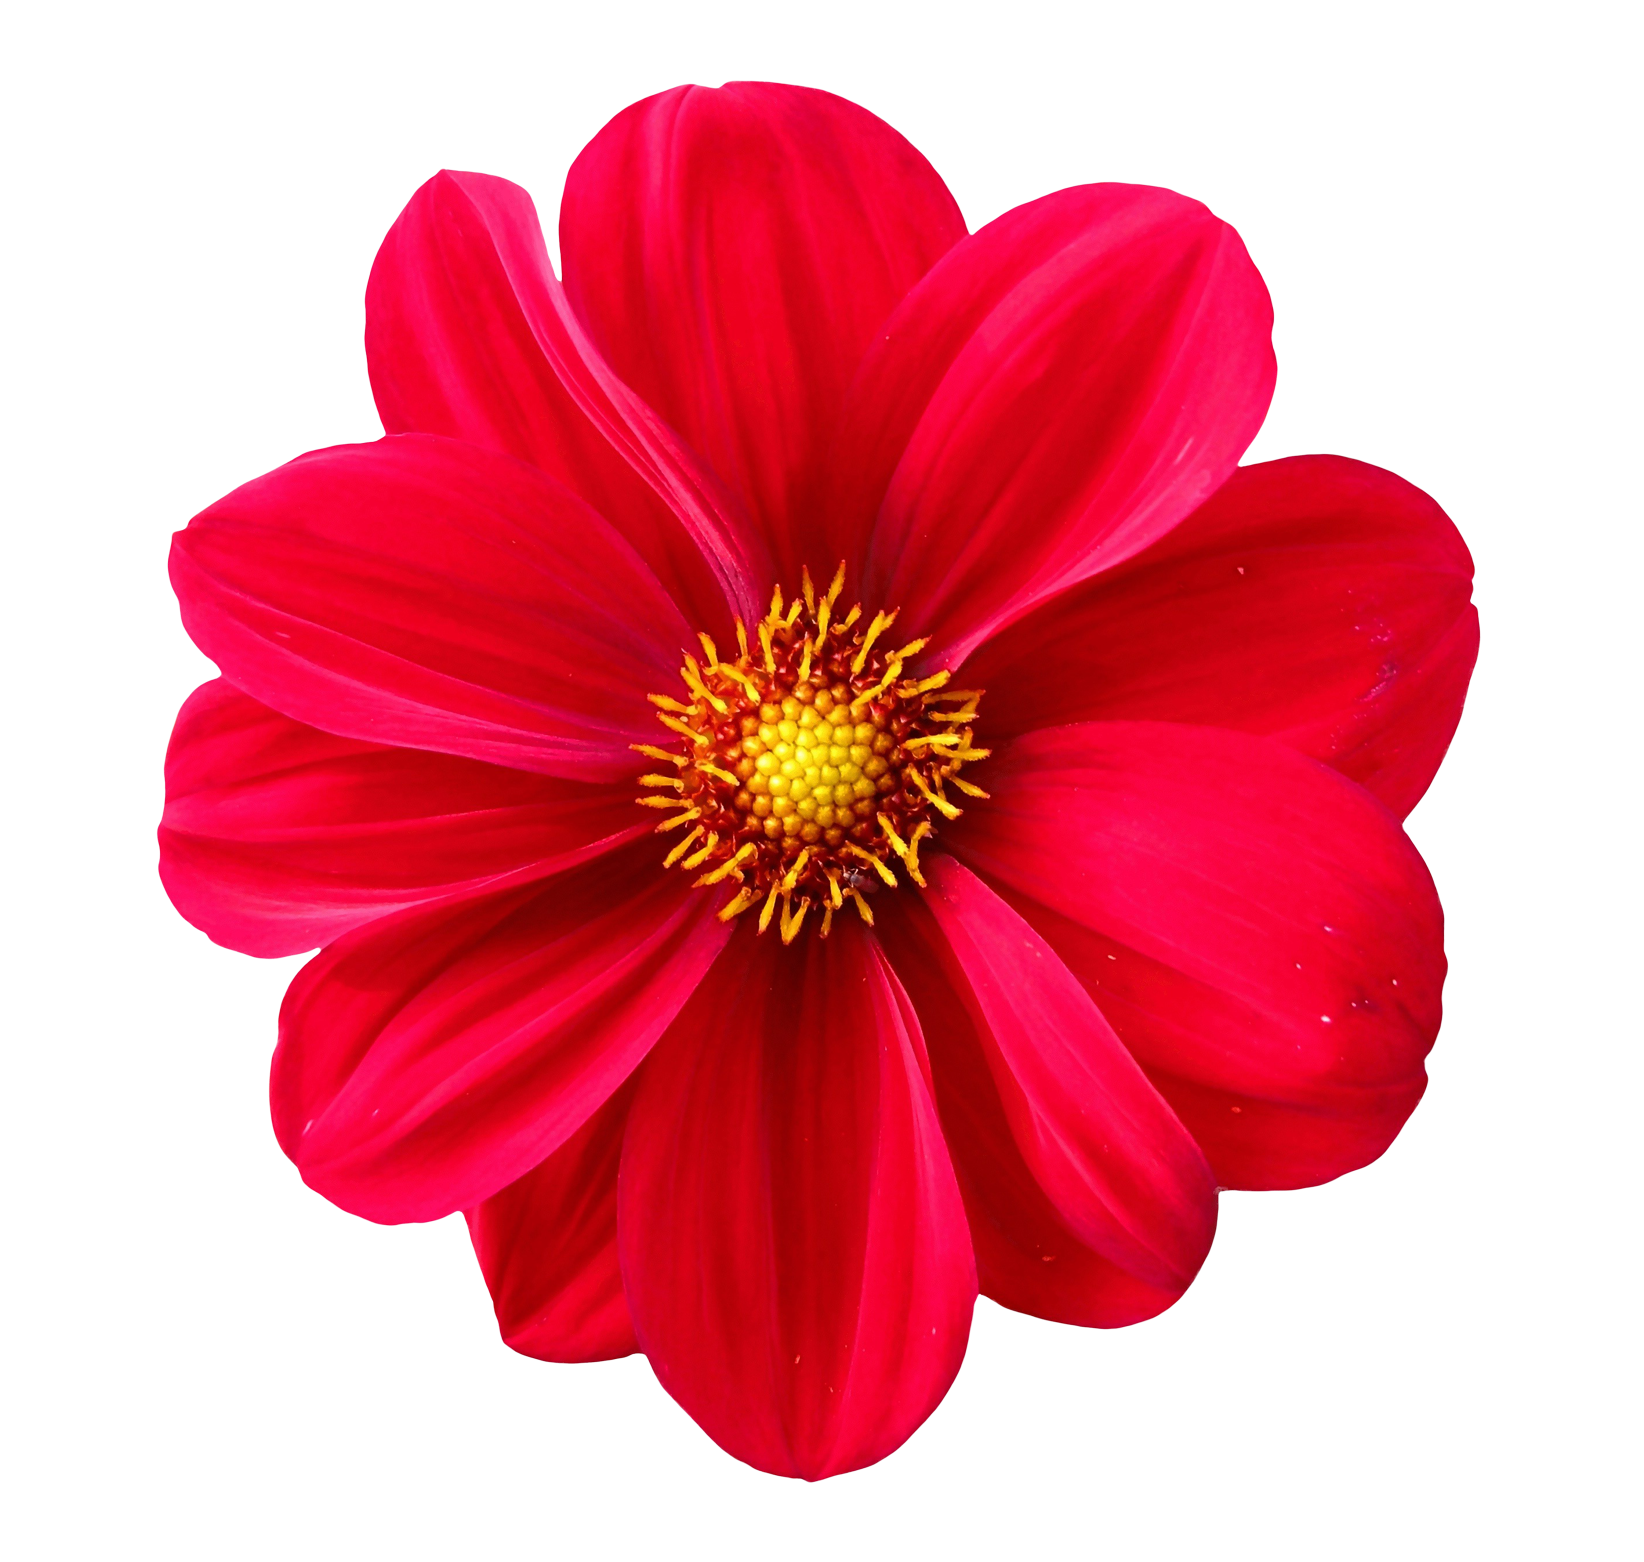 Dahlia Flower PNG Transparent Image - Flower PNG